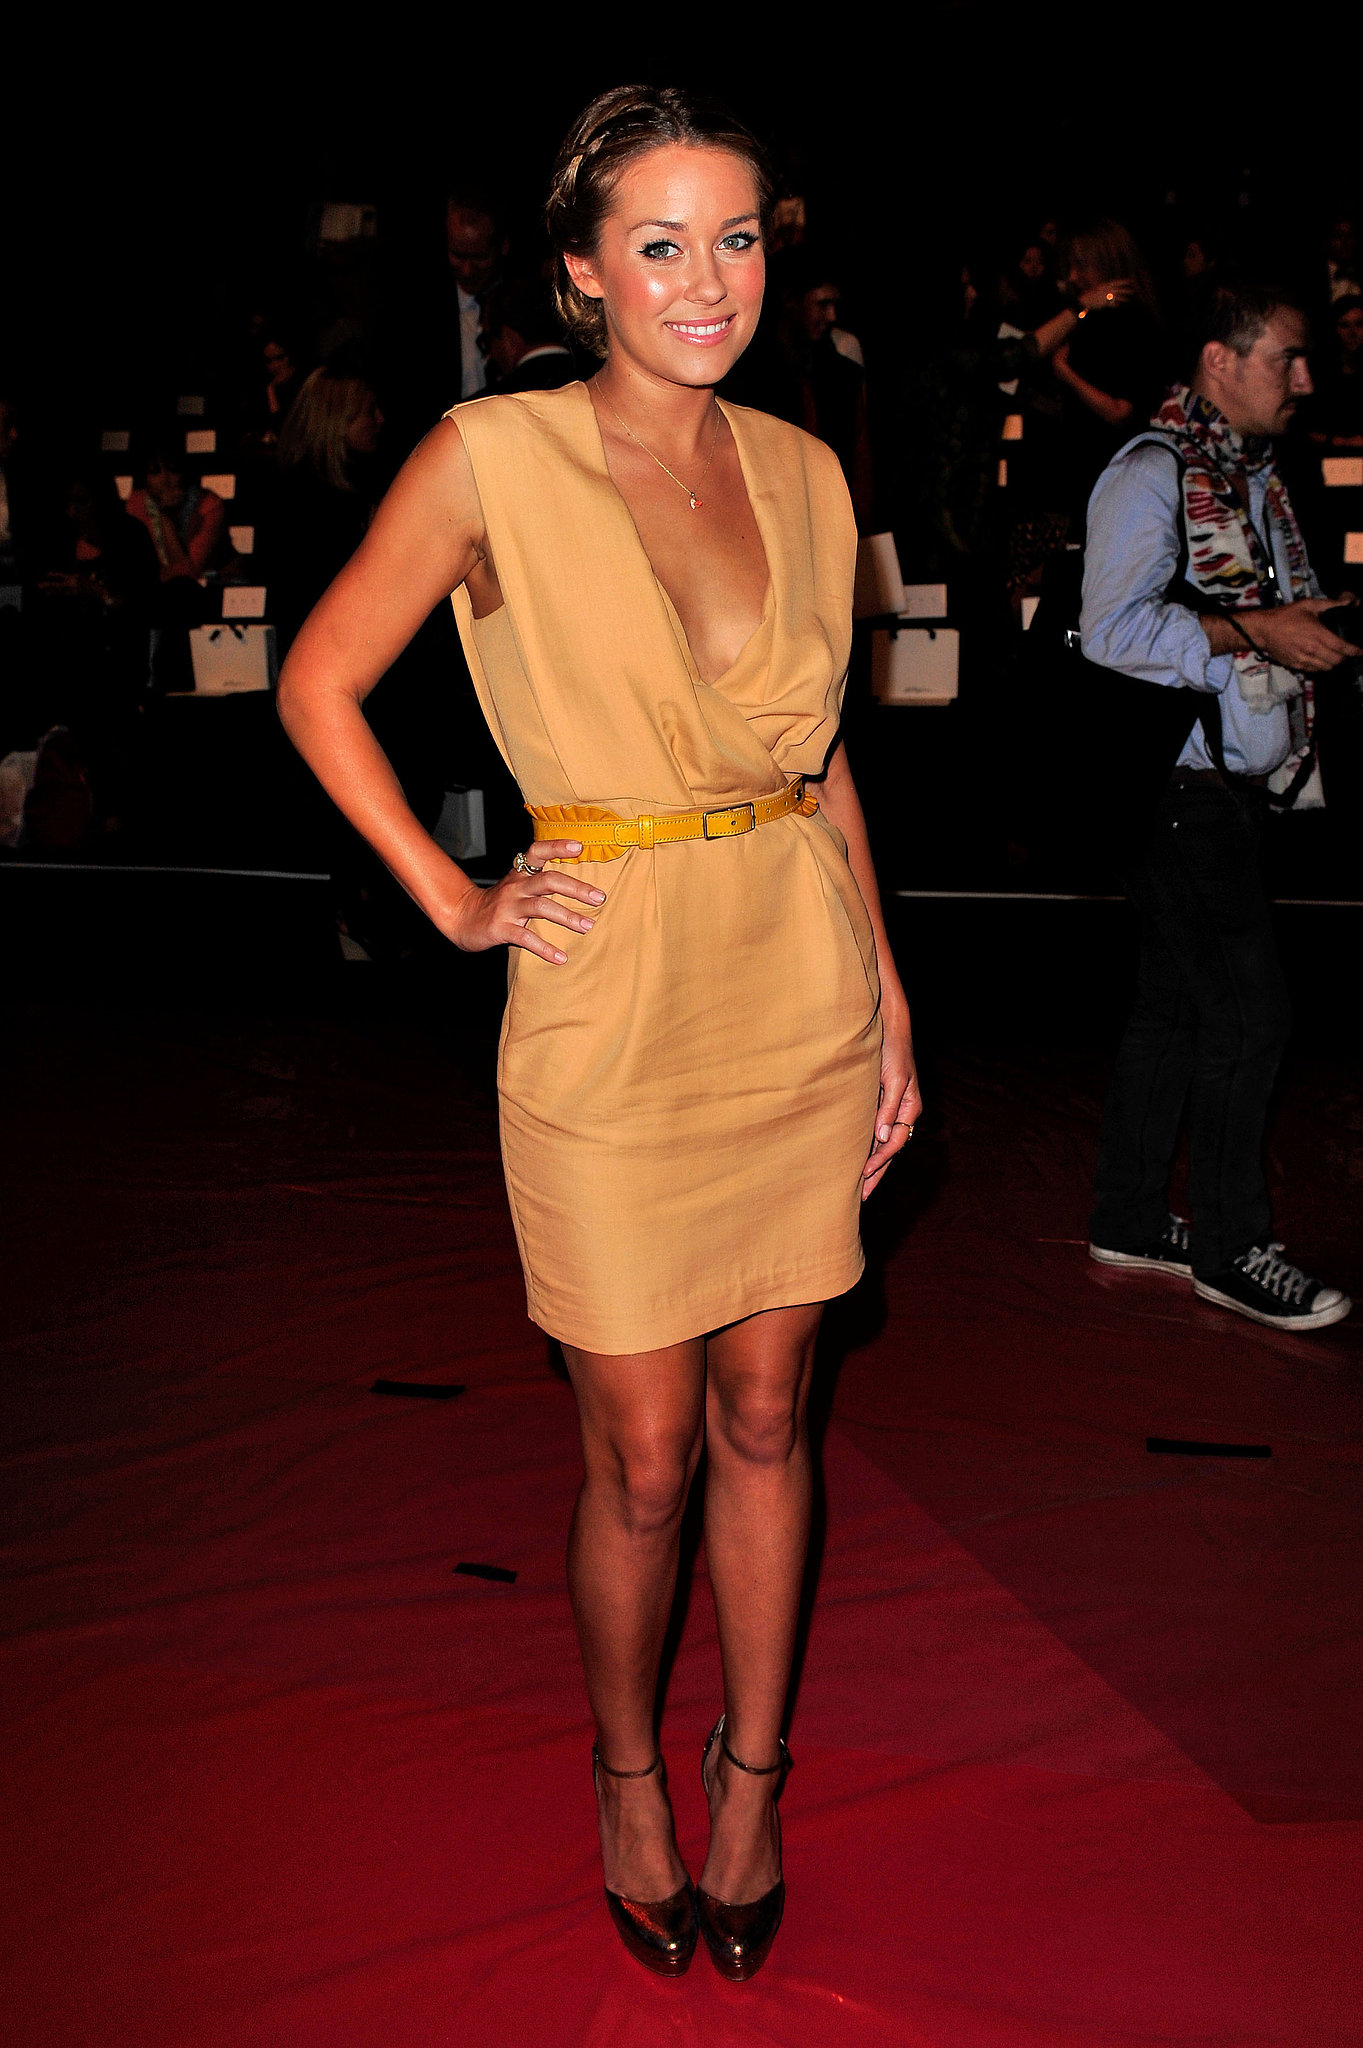 Donning a tan dress cinched with a yellow belt for an NYC event in 2010. Lesson from Lauren: tan and yellow fuse well together.